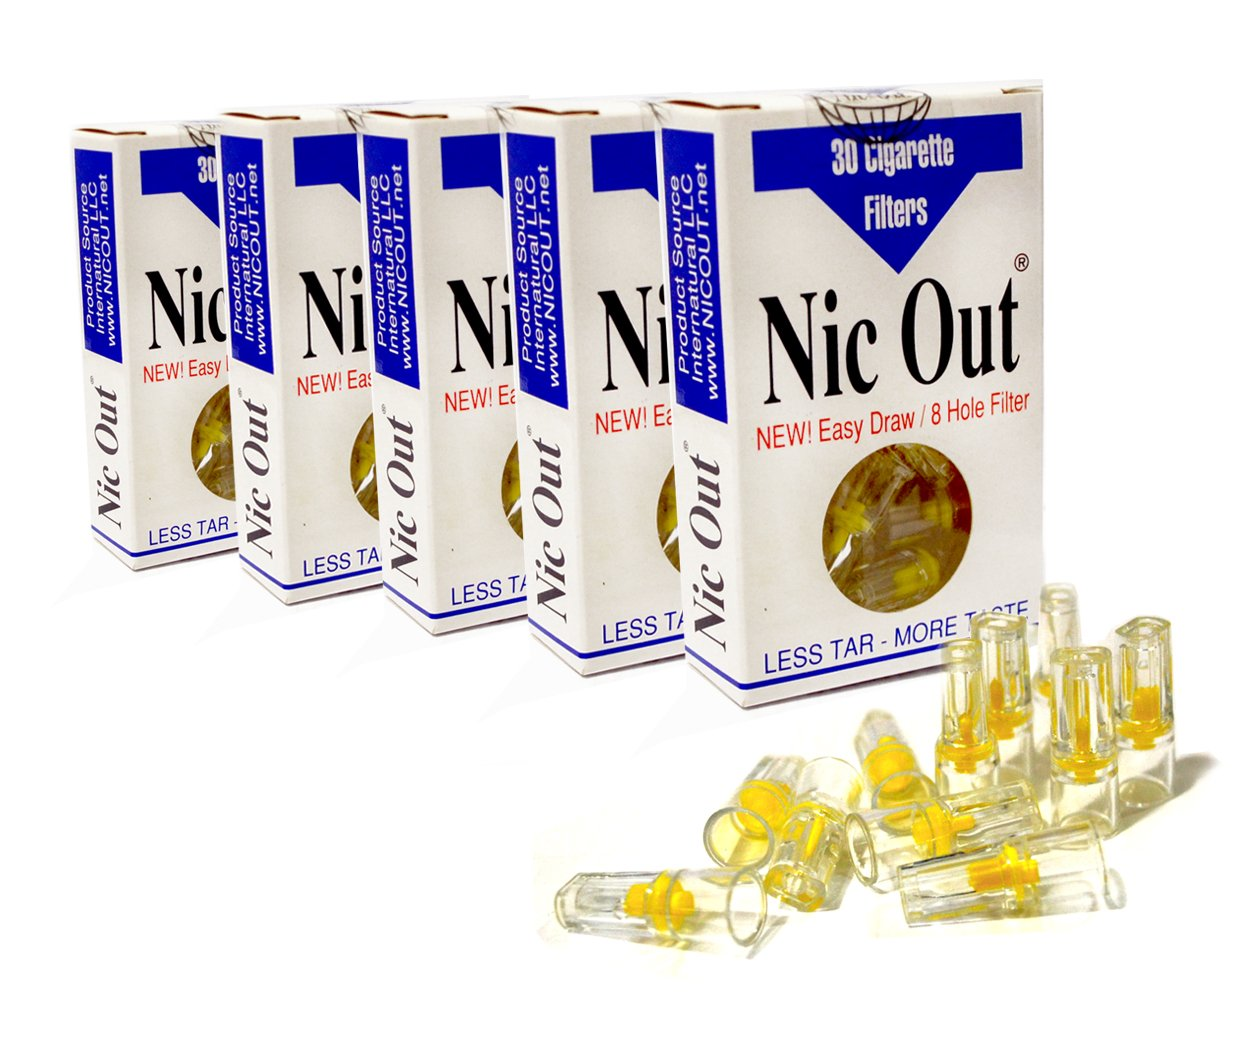 Nic Out Filters For Cigarette Smokers (New Easy Draw 8 Hole Filter System) (5)